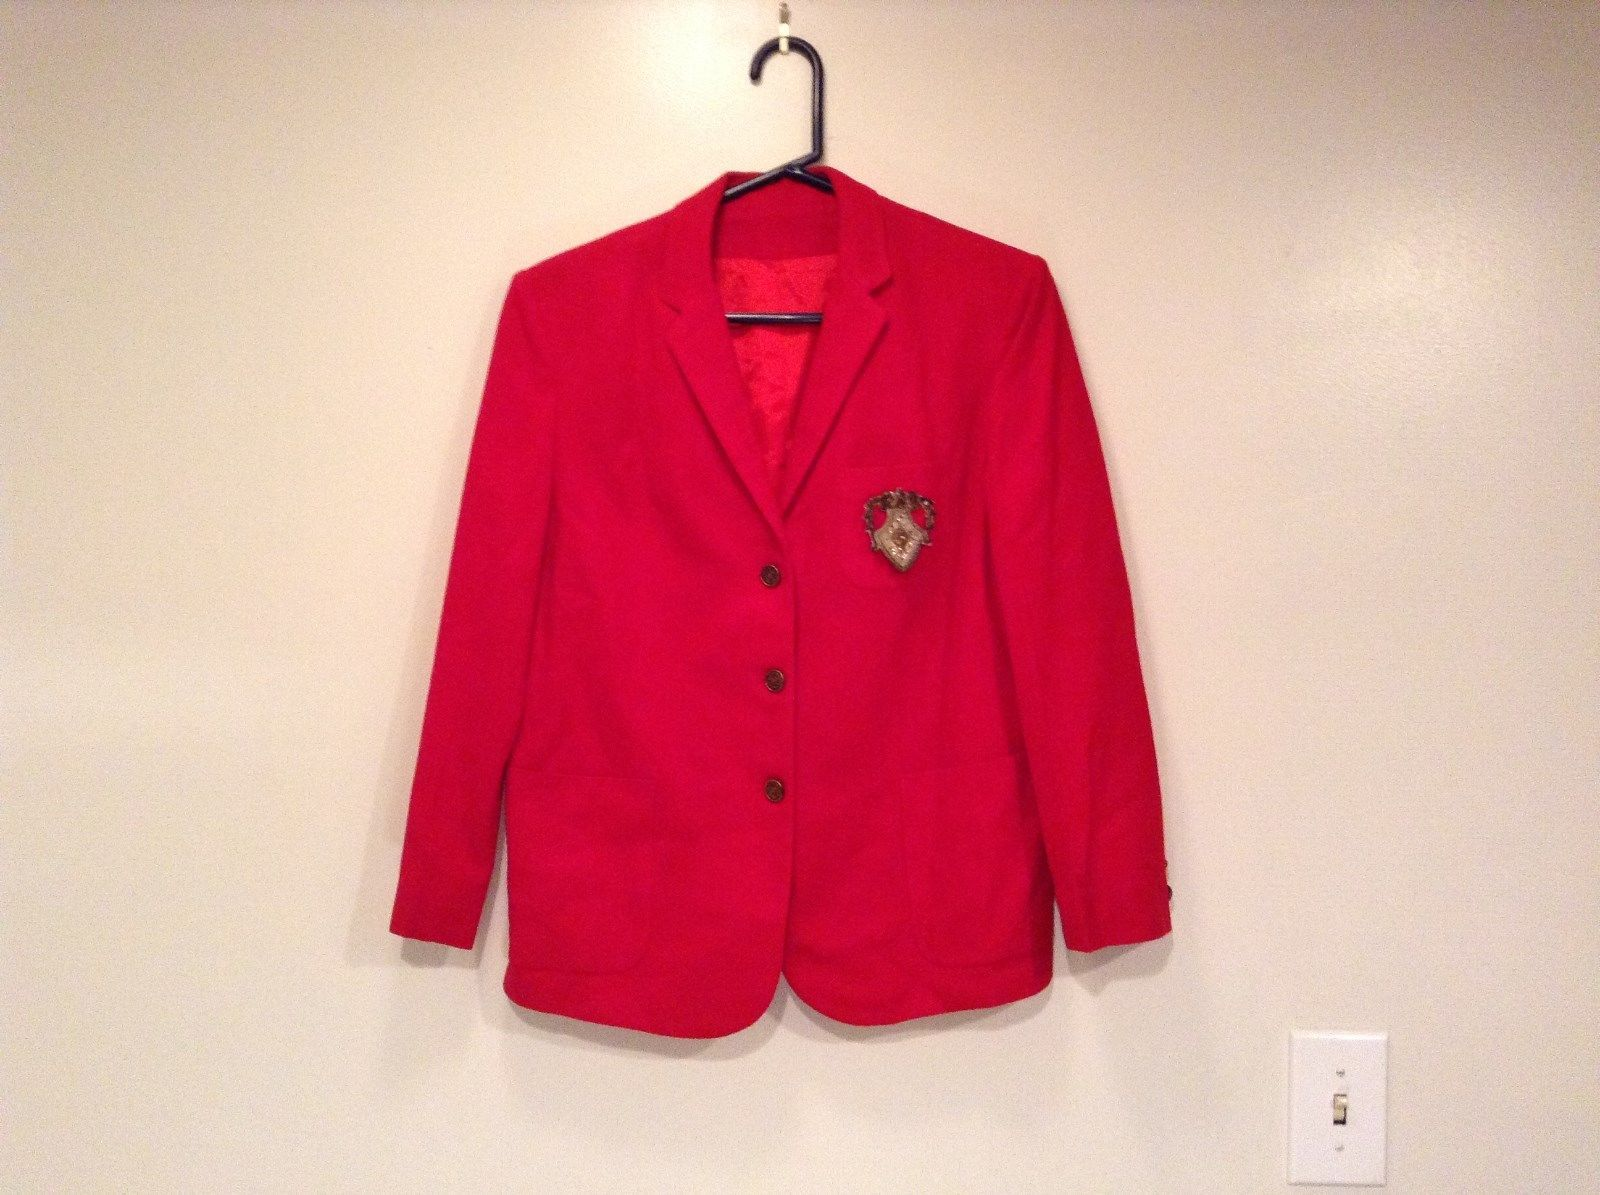 Deep Red Fully Lined Long Sleeve Blazer Jacket Size S to M Petite No Tags